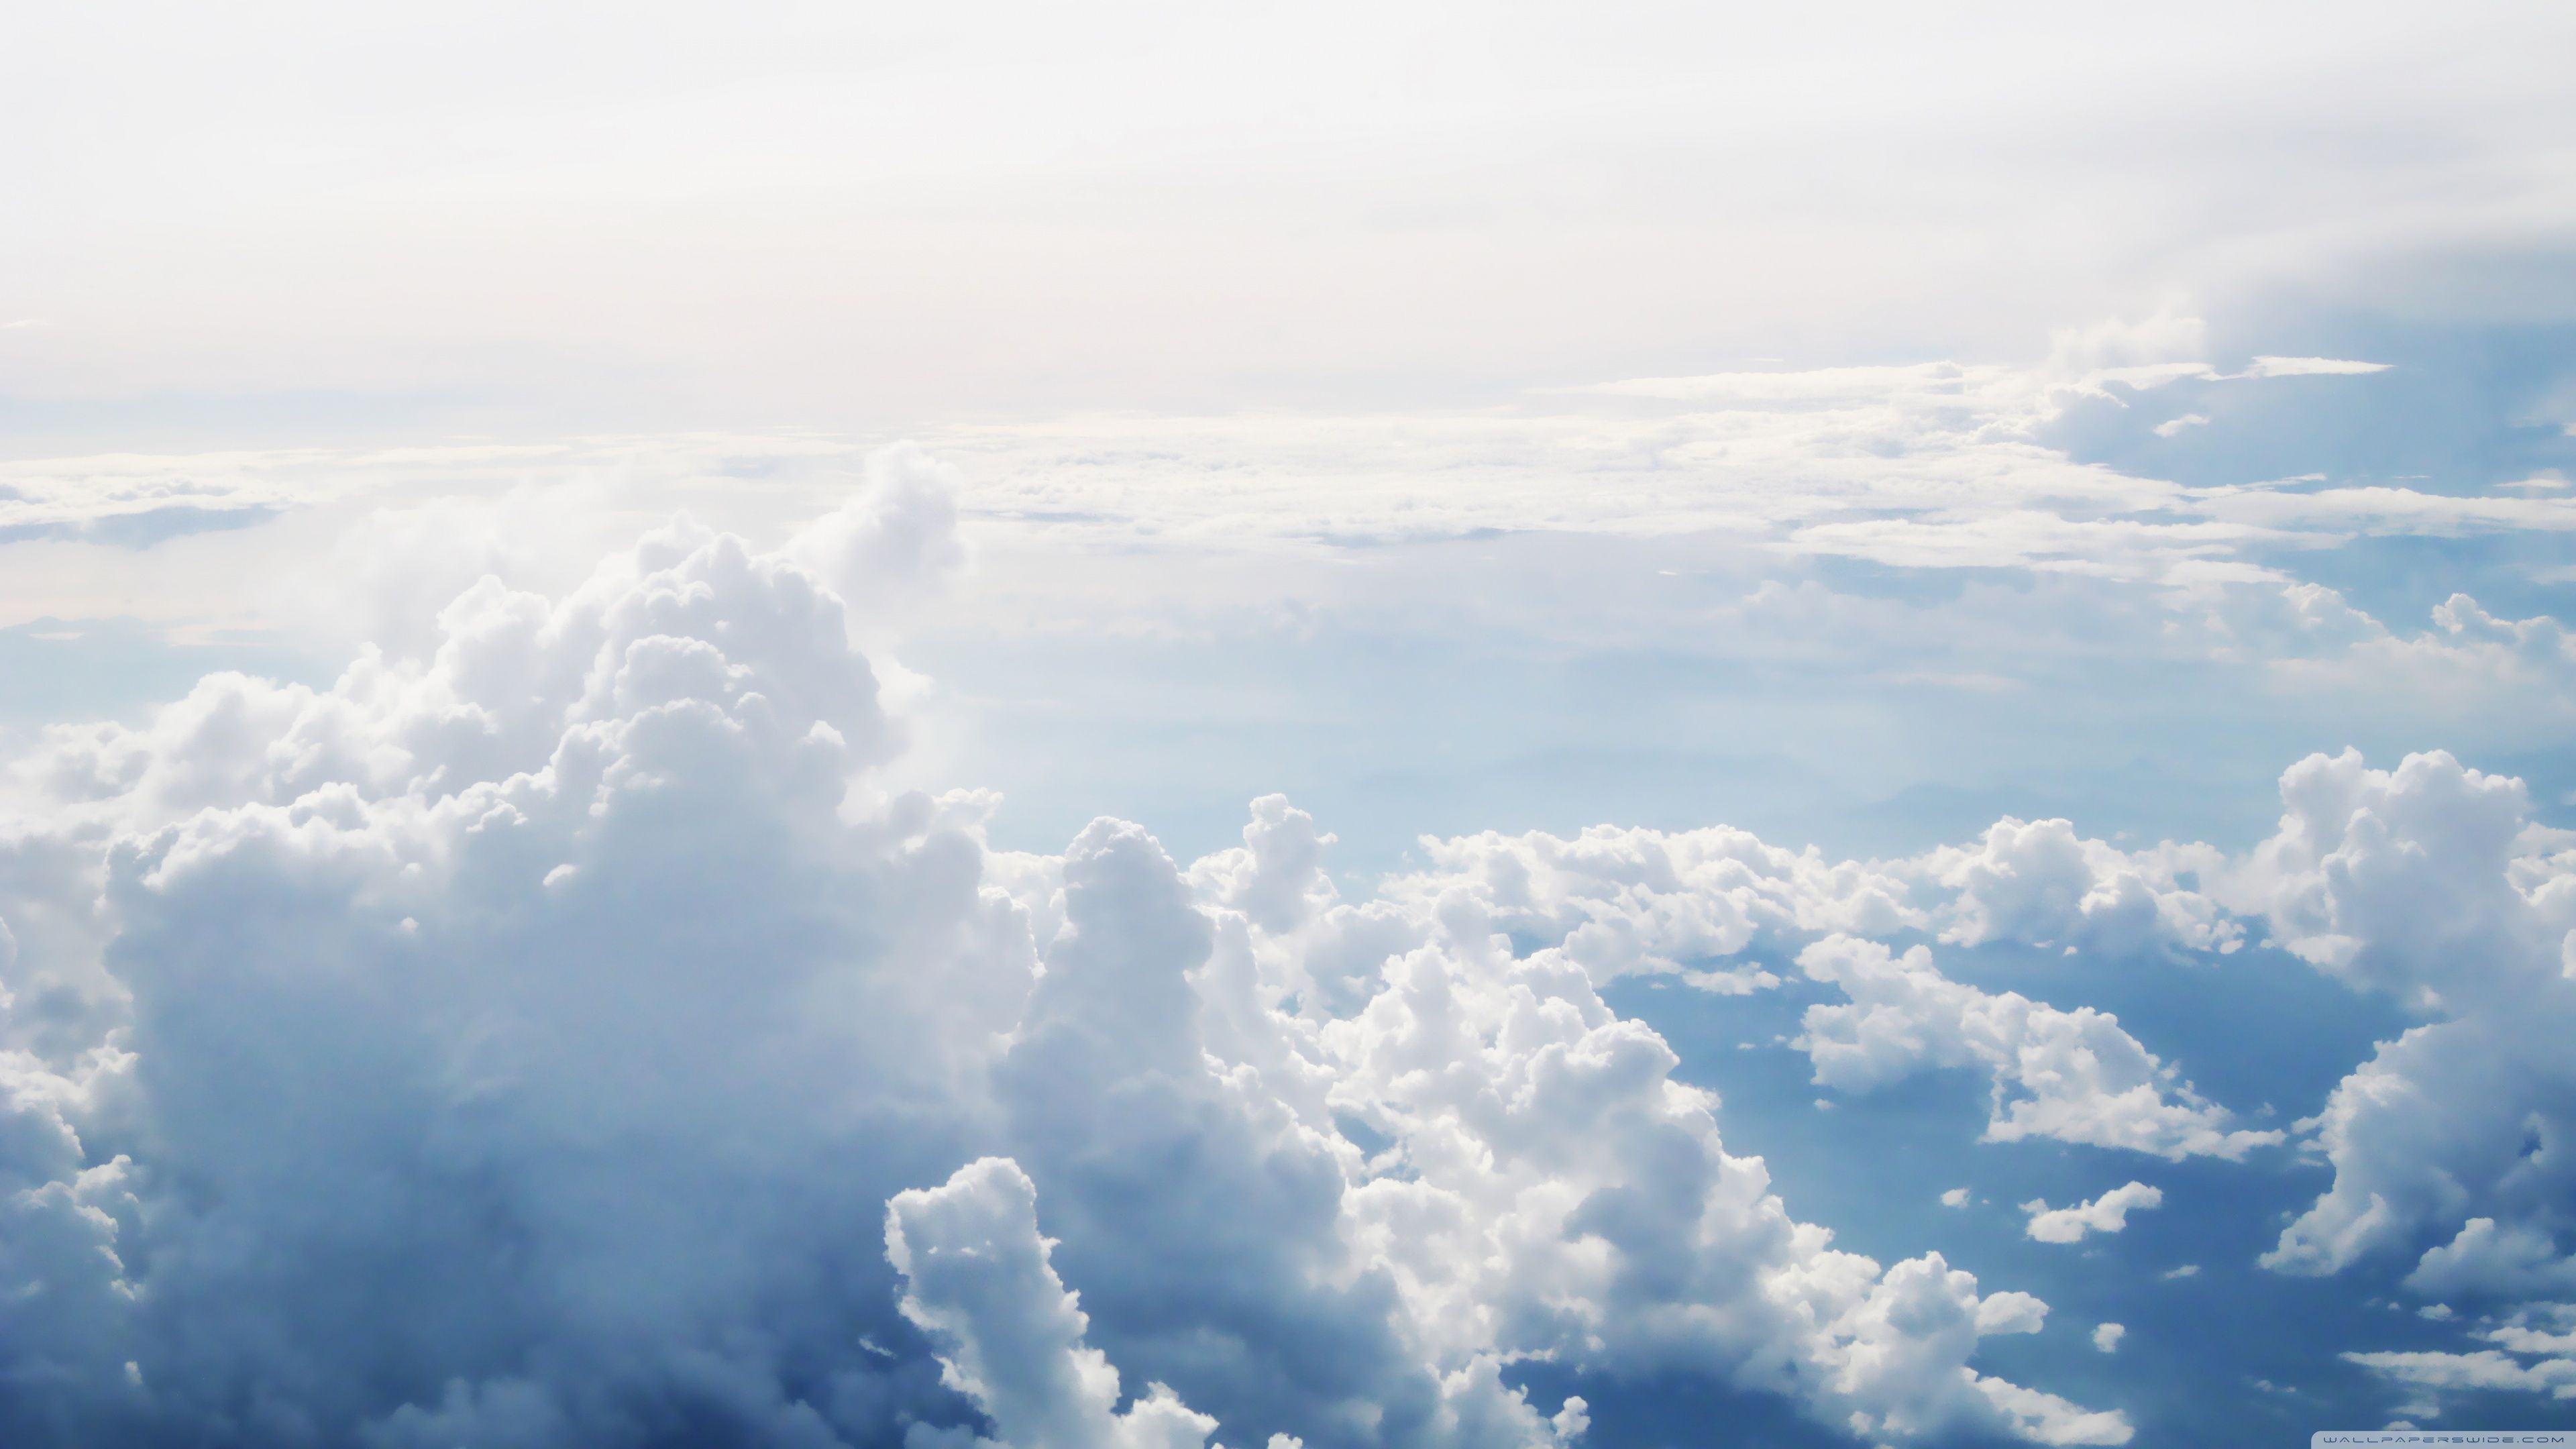 Cloud Hd Wallpapers posted by Ryan Peltier